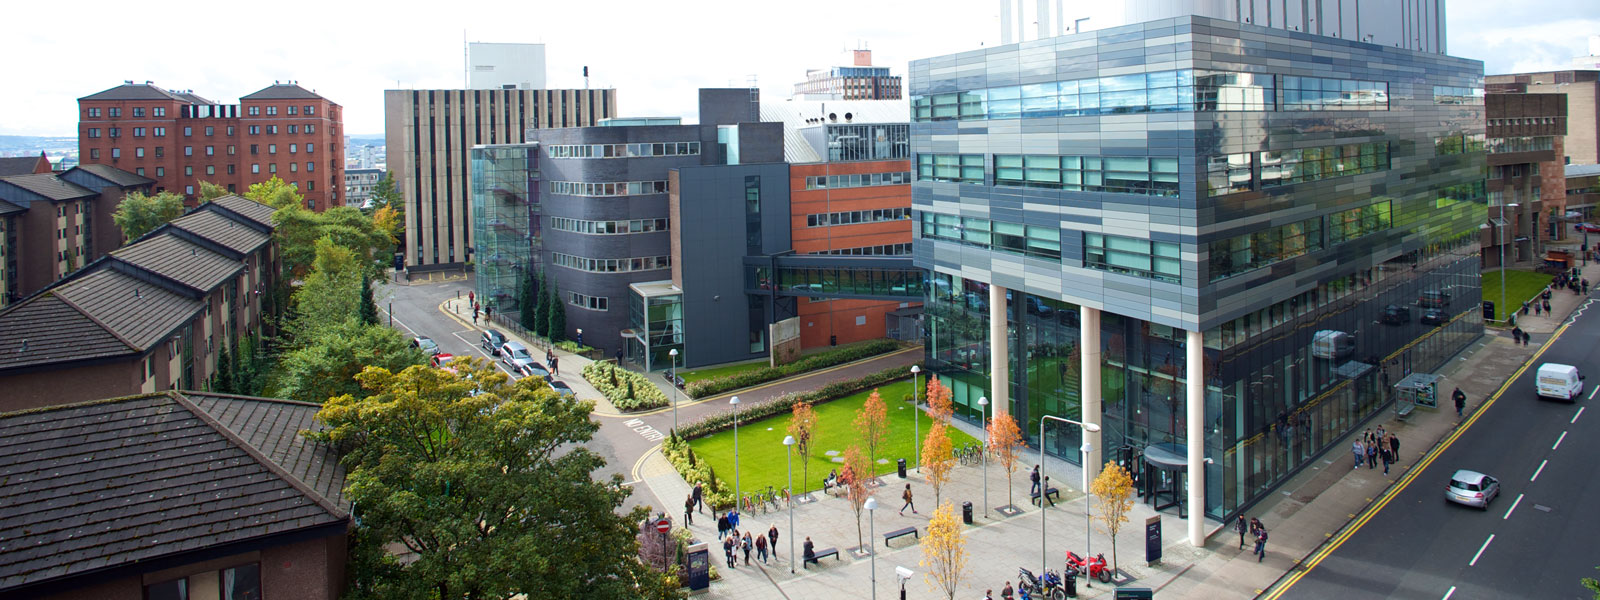 University of Strathclyde buildings